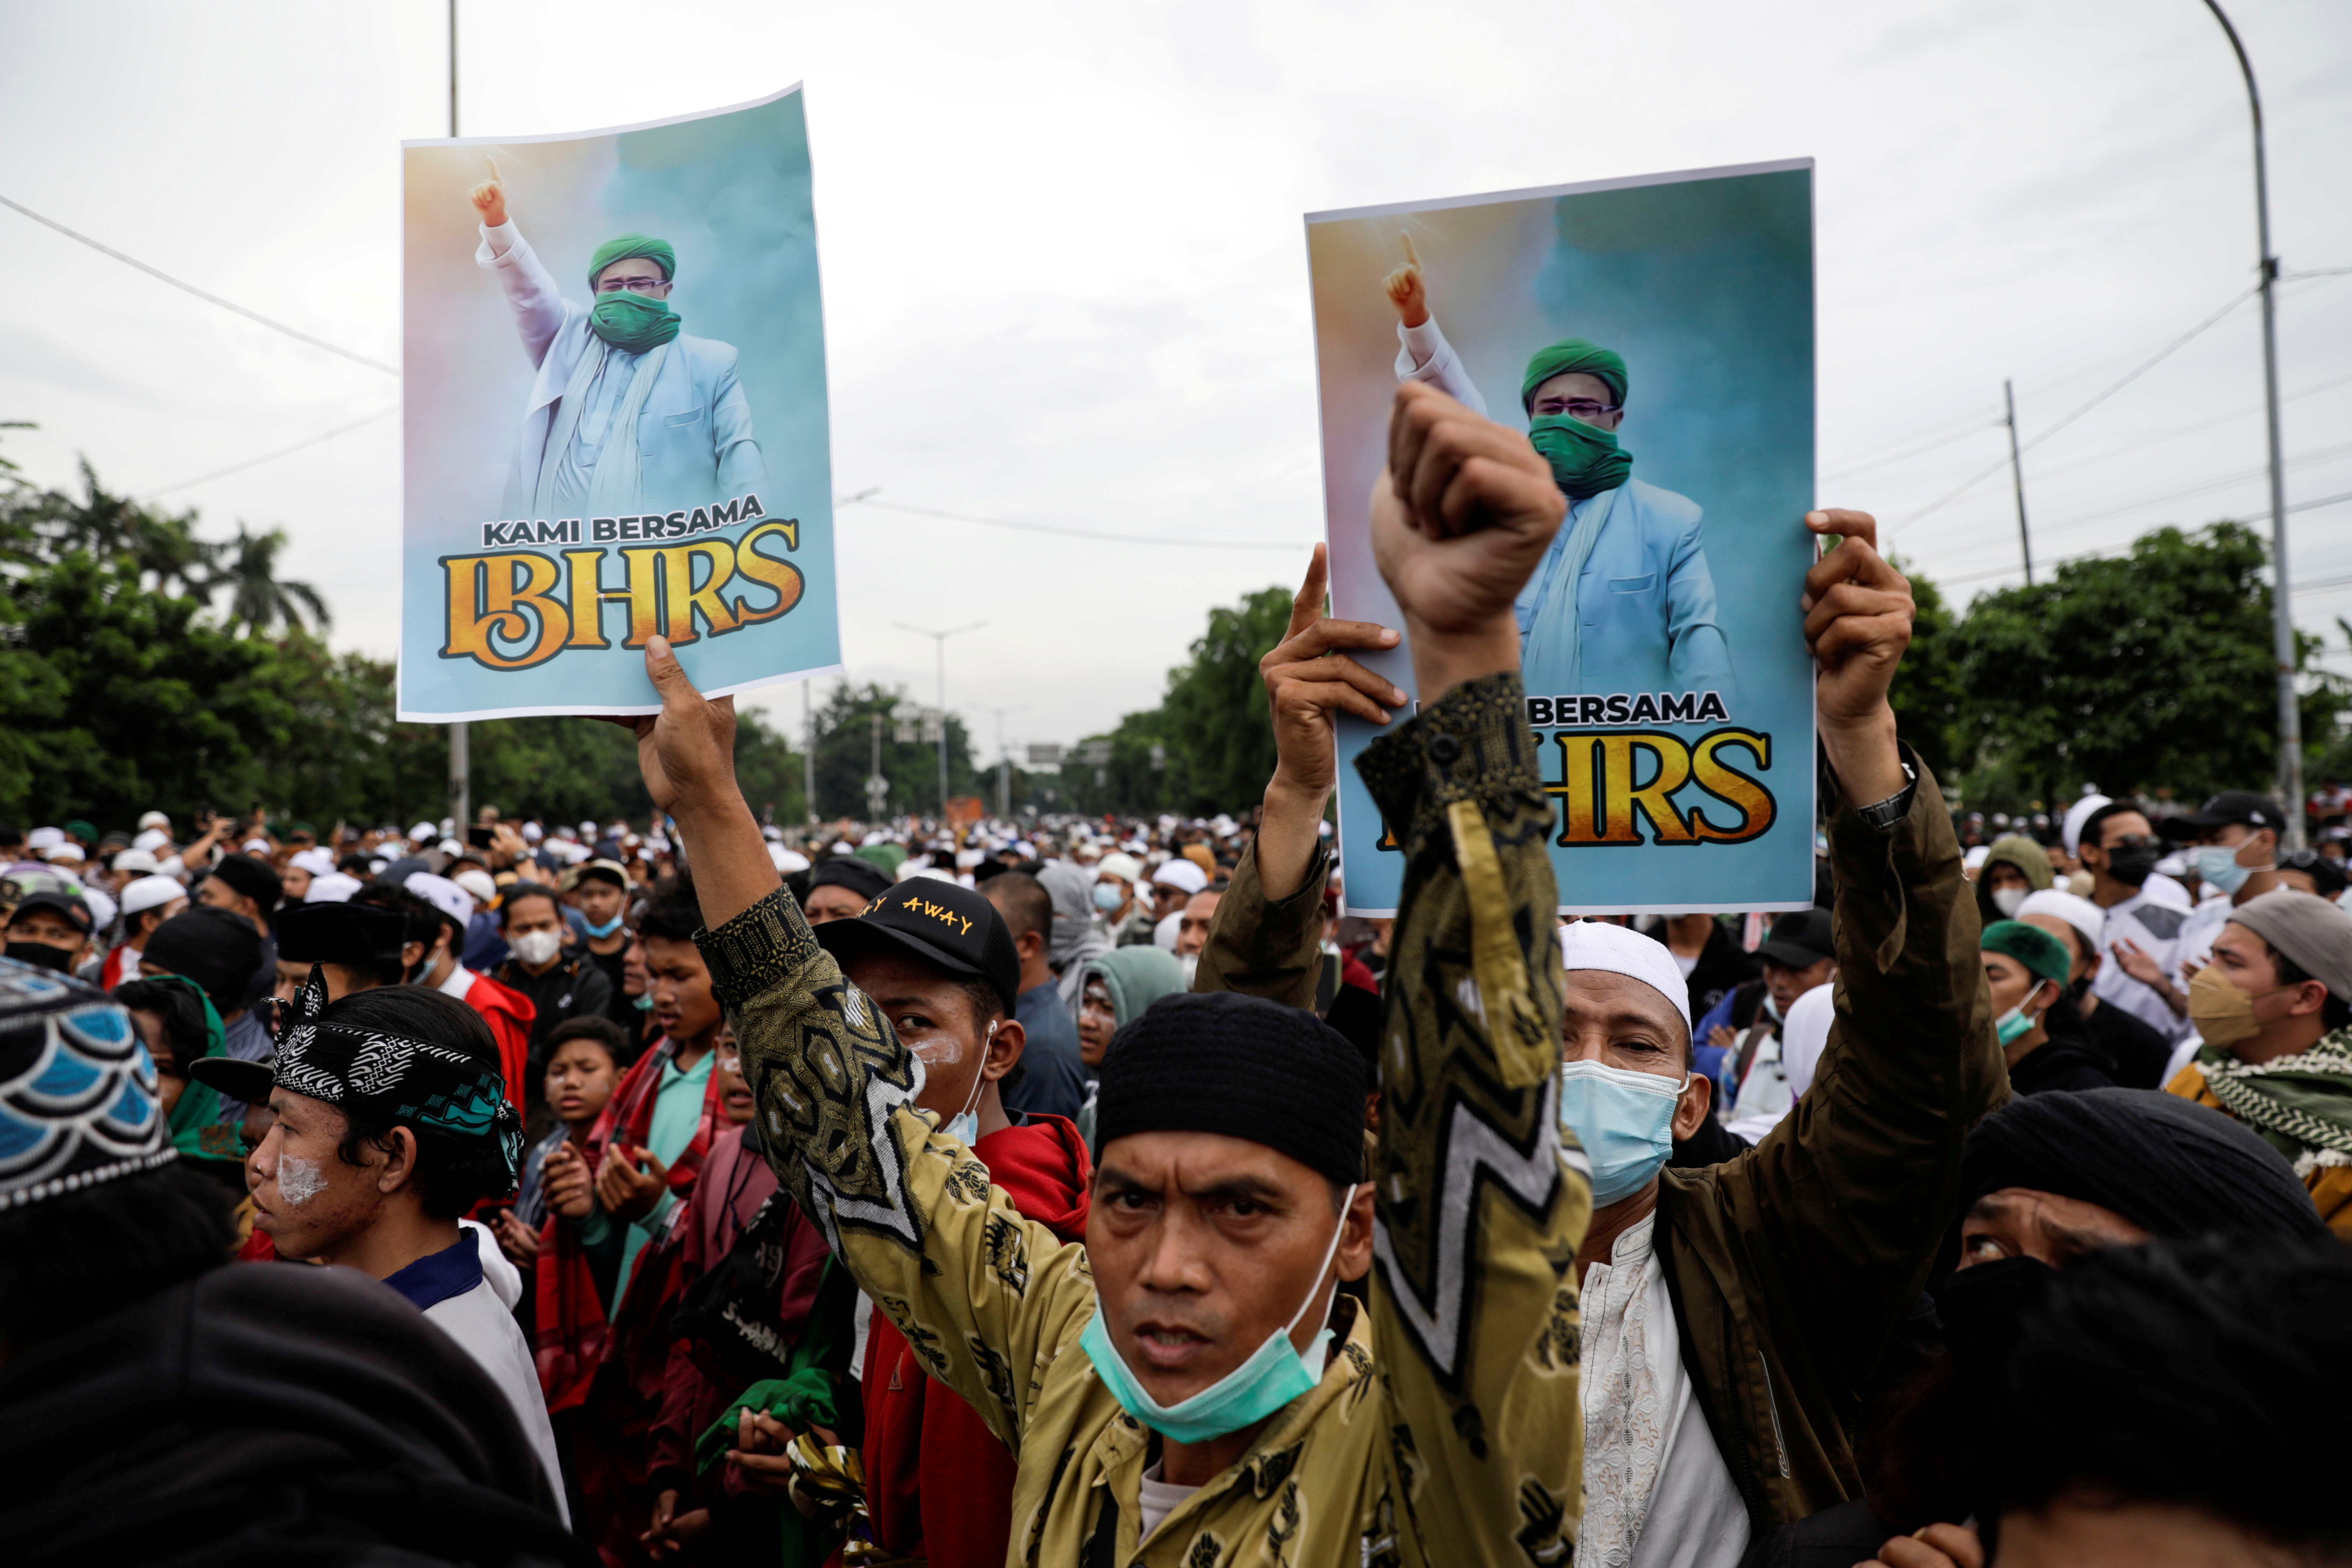 People take part in a protest supporting Rizieq Shihab, an Indonesian Islamic cleric who is sentenced for breaching coronavirus disease (COVID-19) curbs after his return last year from self-imposed exile, in Jakarta, Indonesia, June 24, 2021. REUTERS/Willy Kurniawan